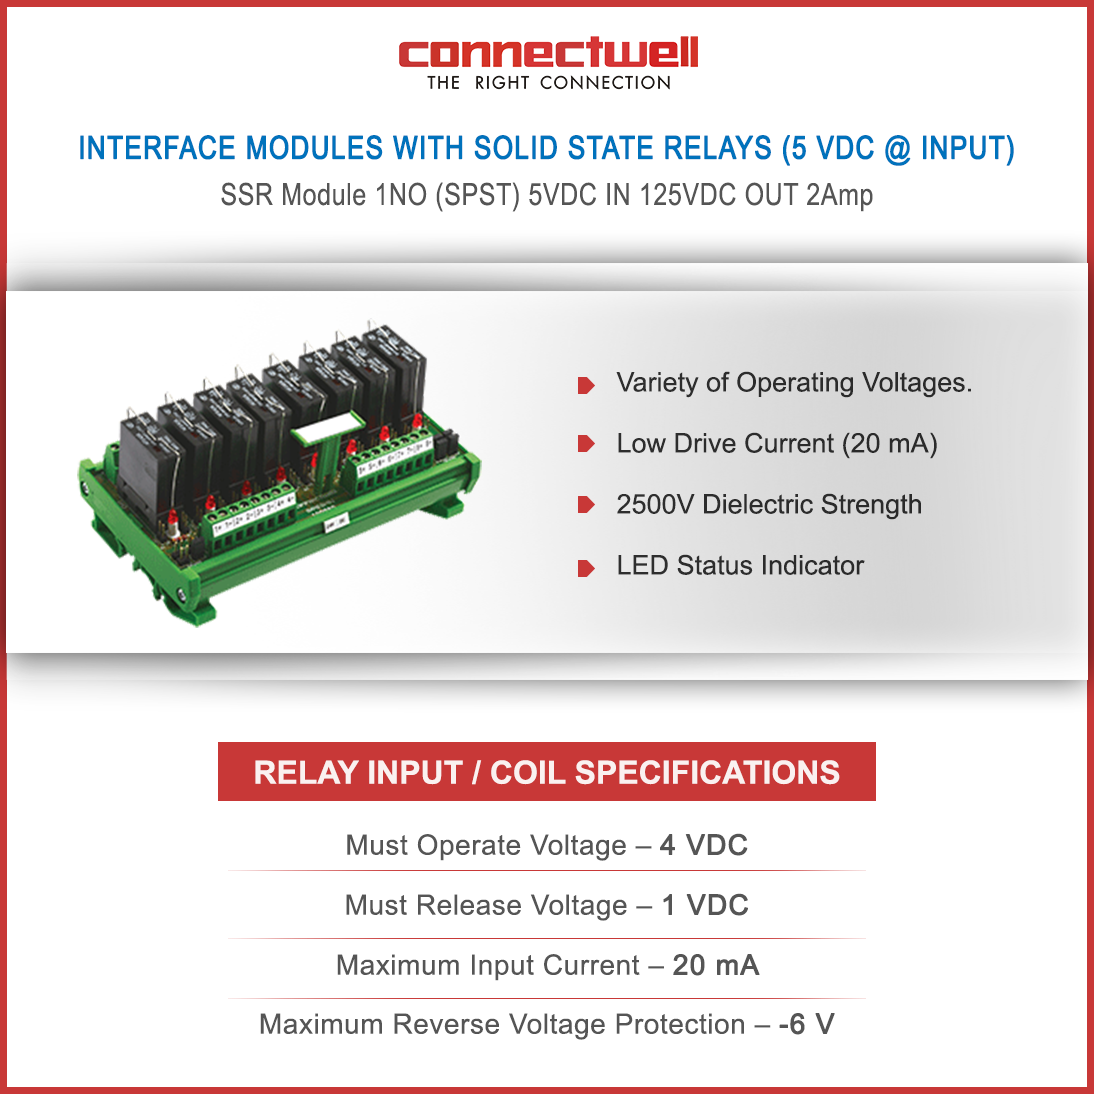 Product Interface Modules With Solid State Relays 5 VDC Input